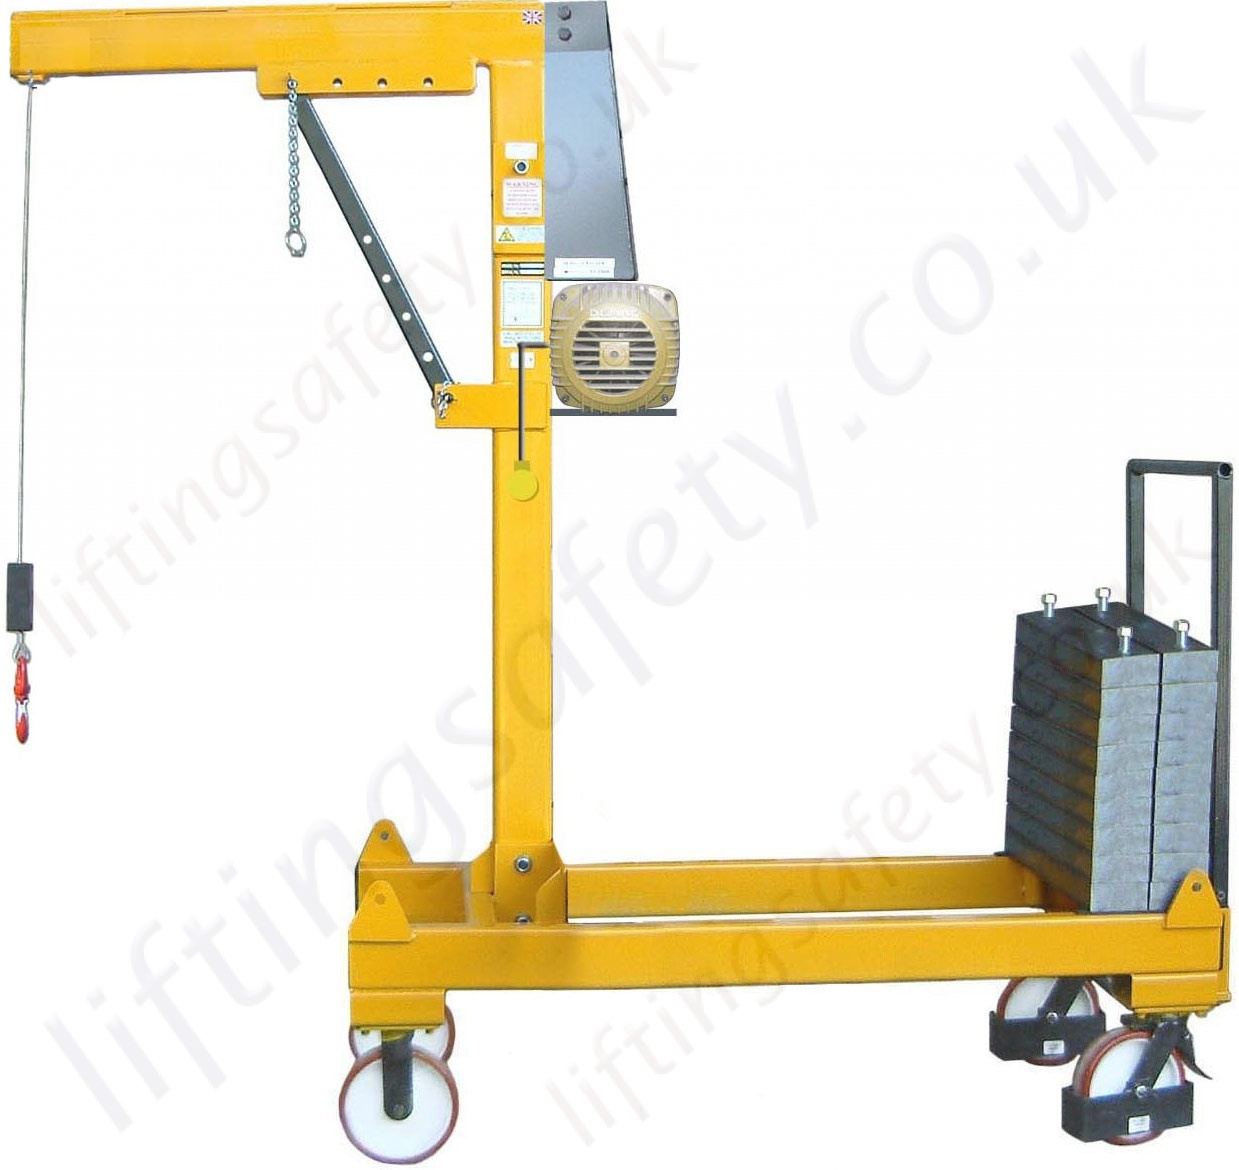 Safety Lifting Arms : Manual or powered rigid arm knock down counterbalance